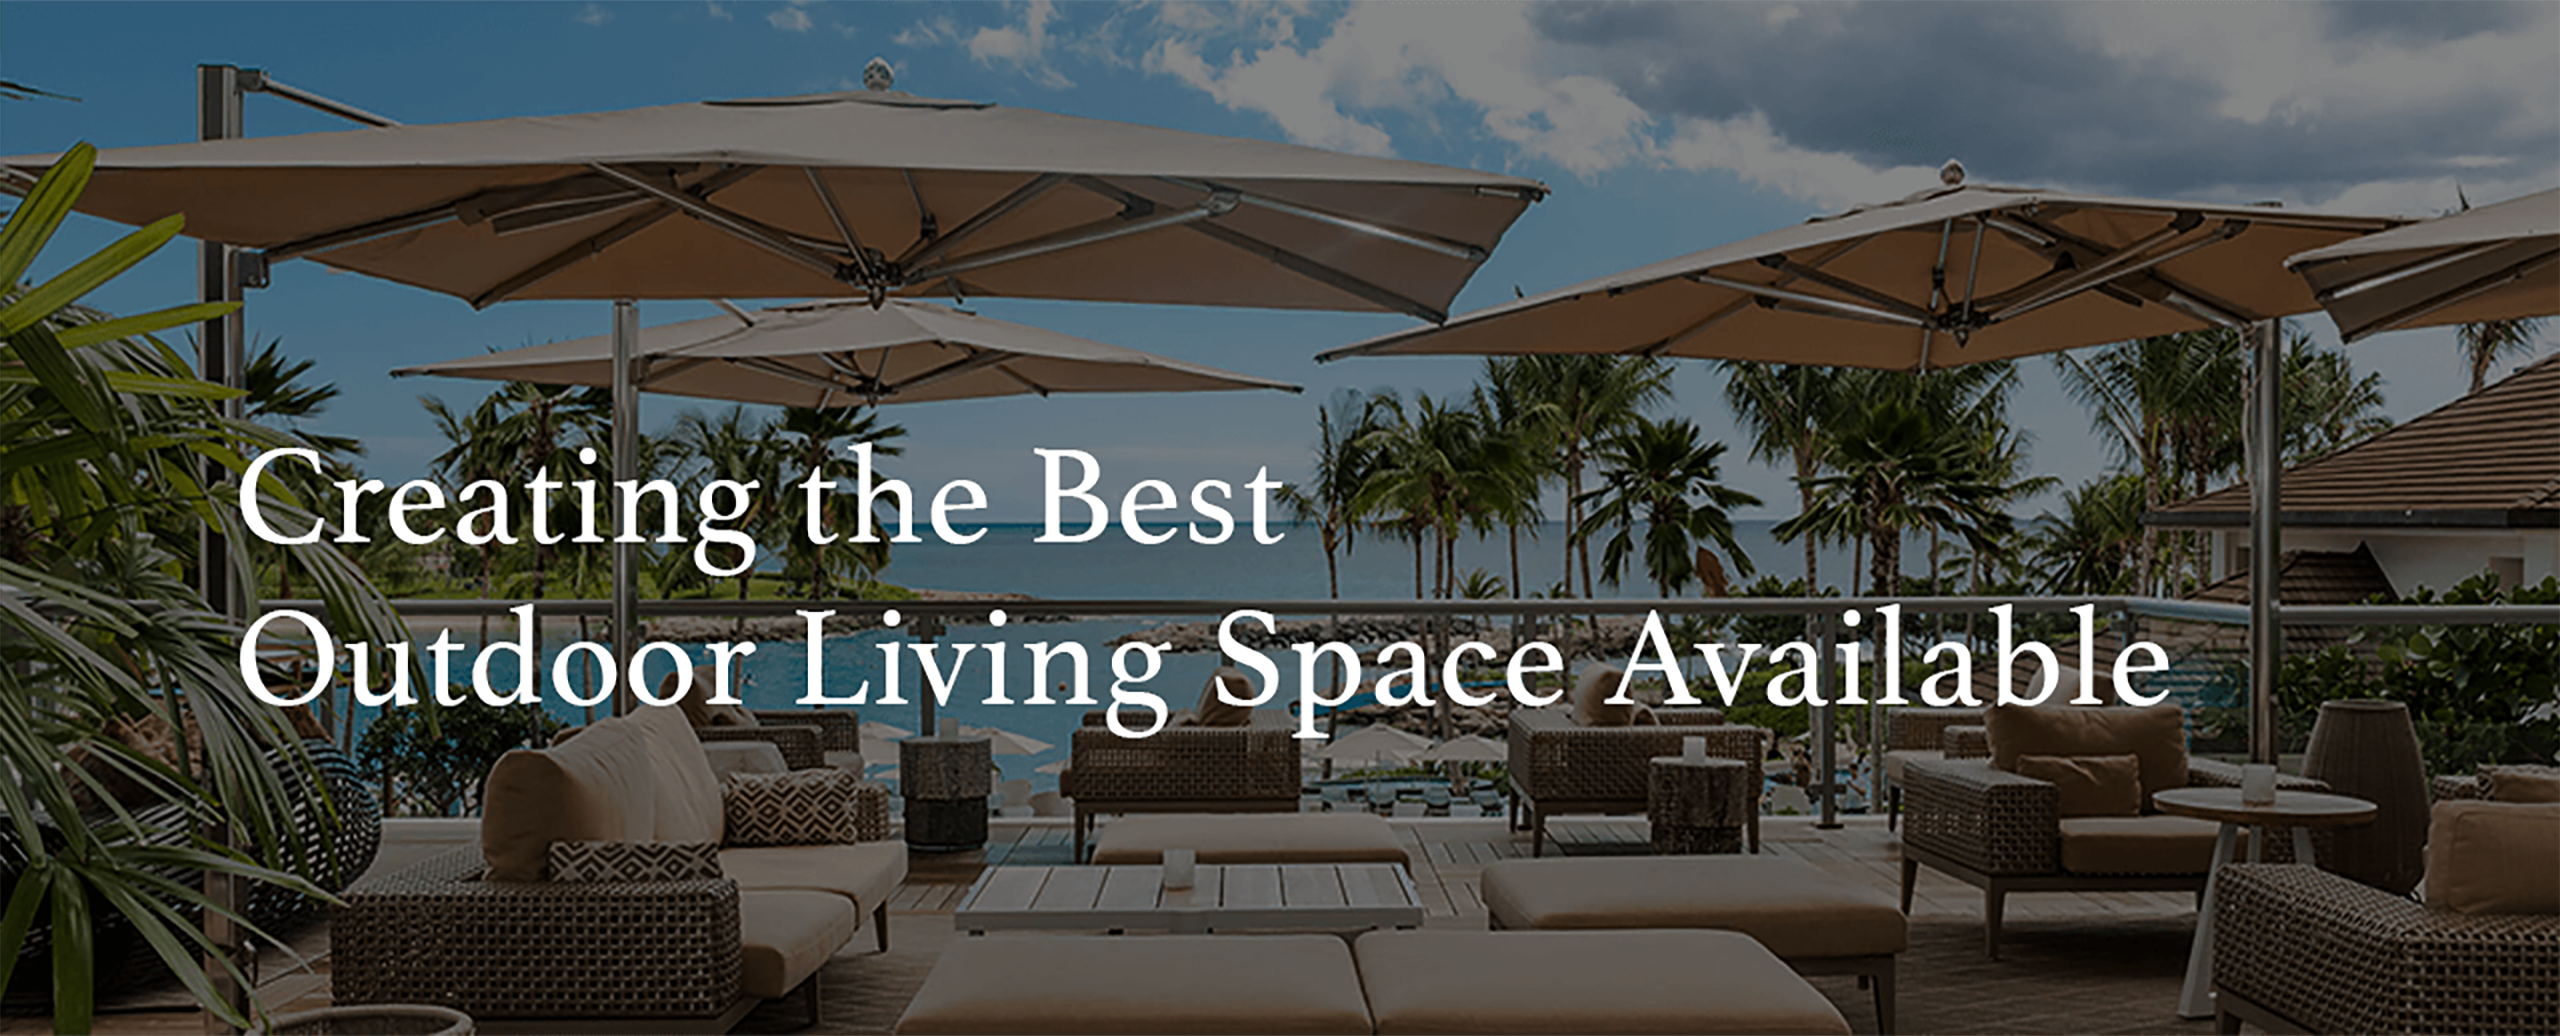 Creating the Best Outdoor Living Space Available